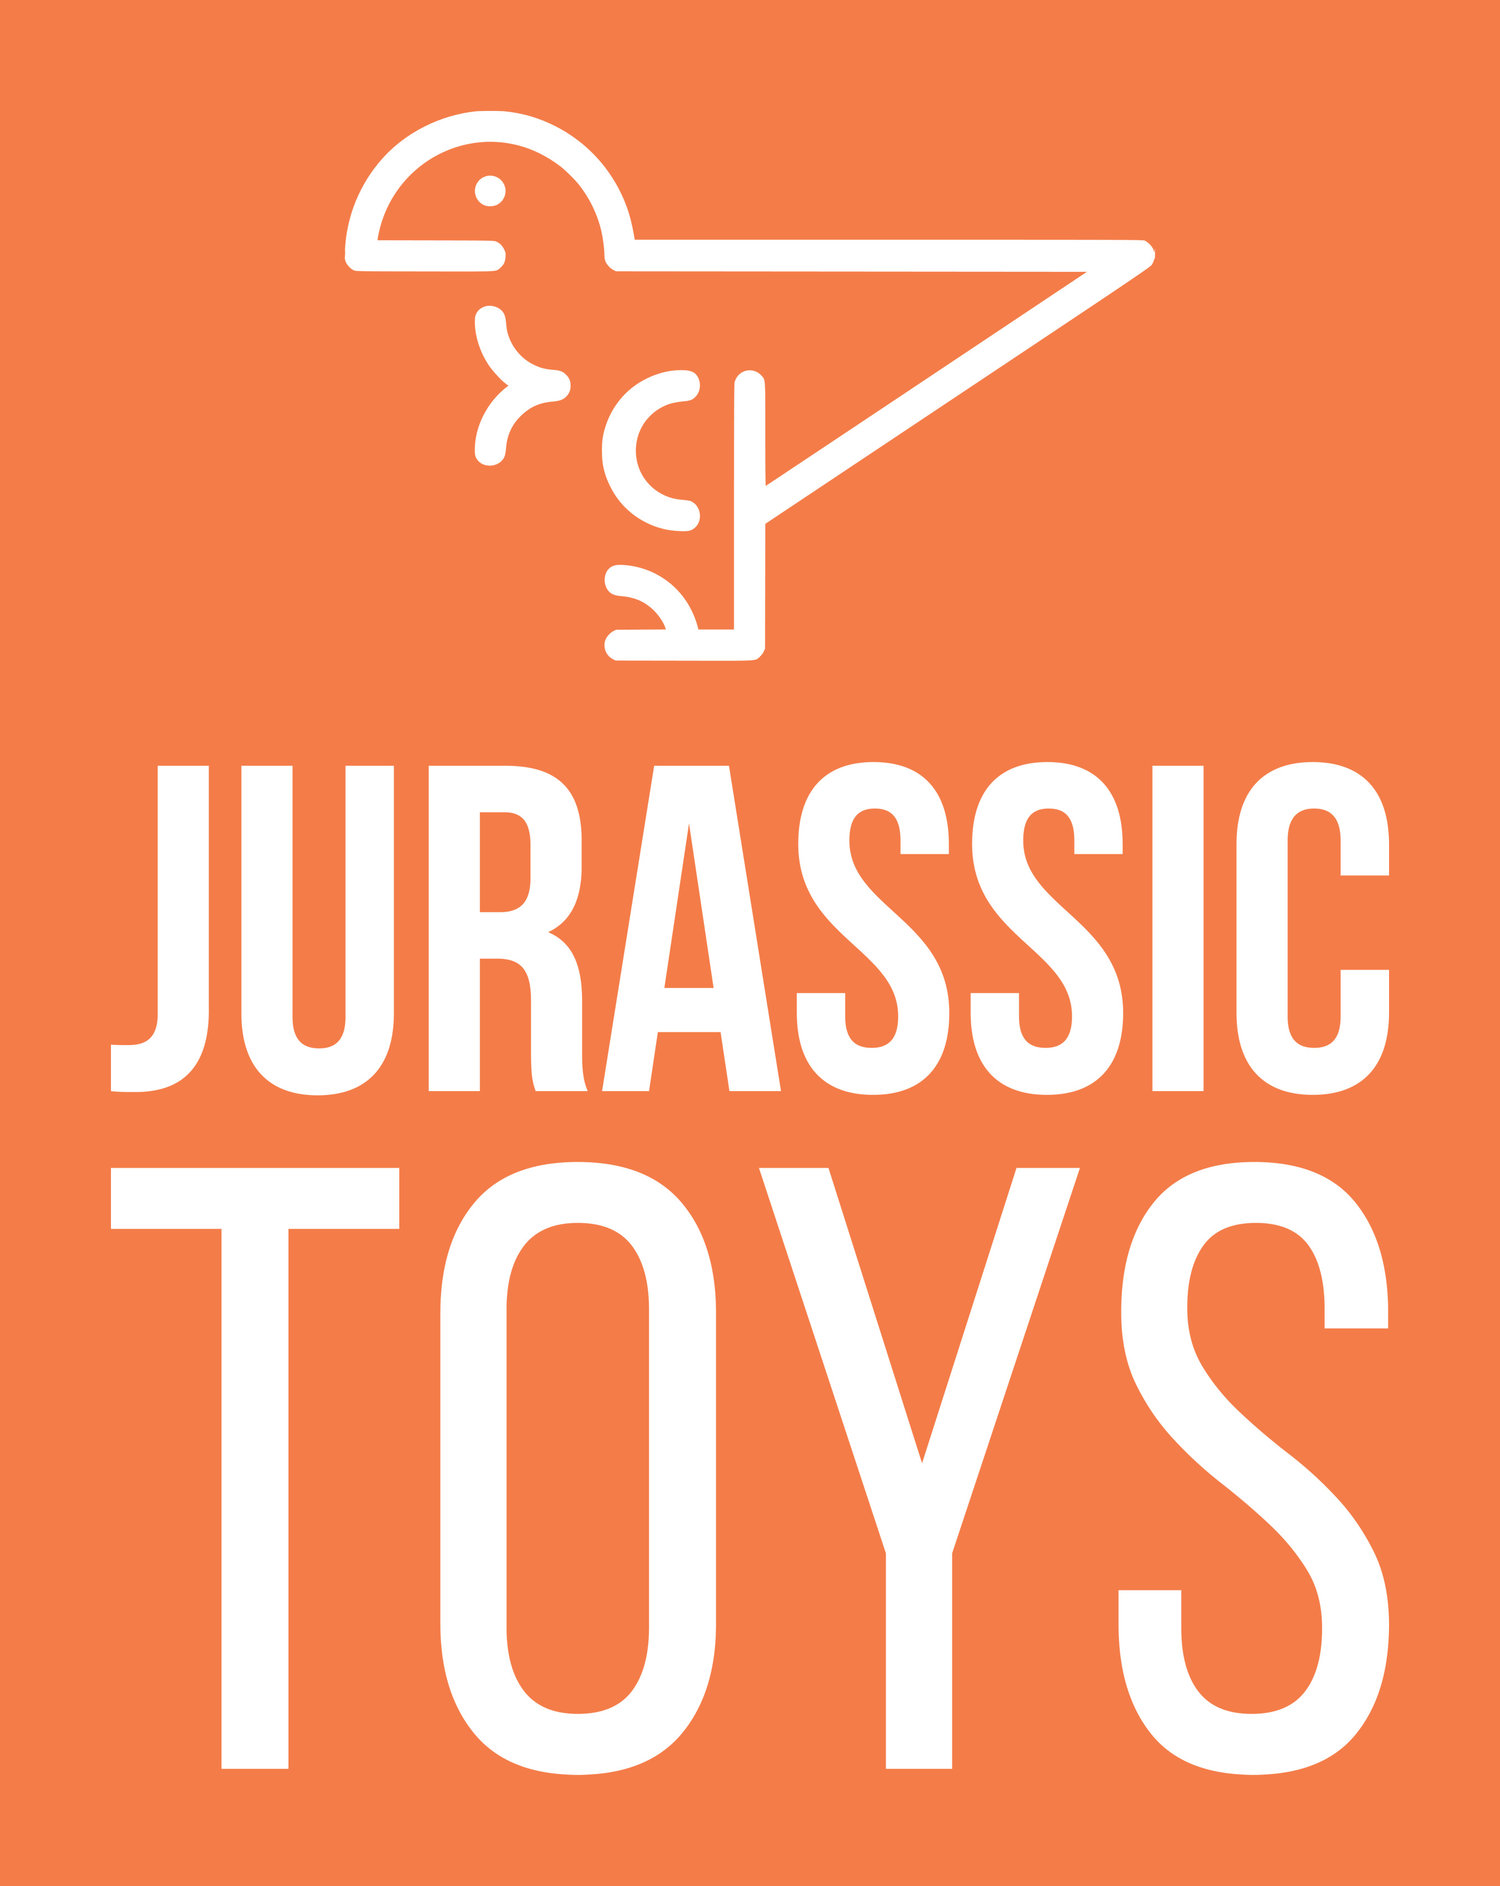 Jurassic World Toys | Dinosaur Toys | Gifts | Figures